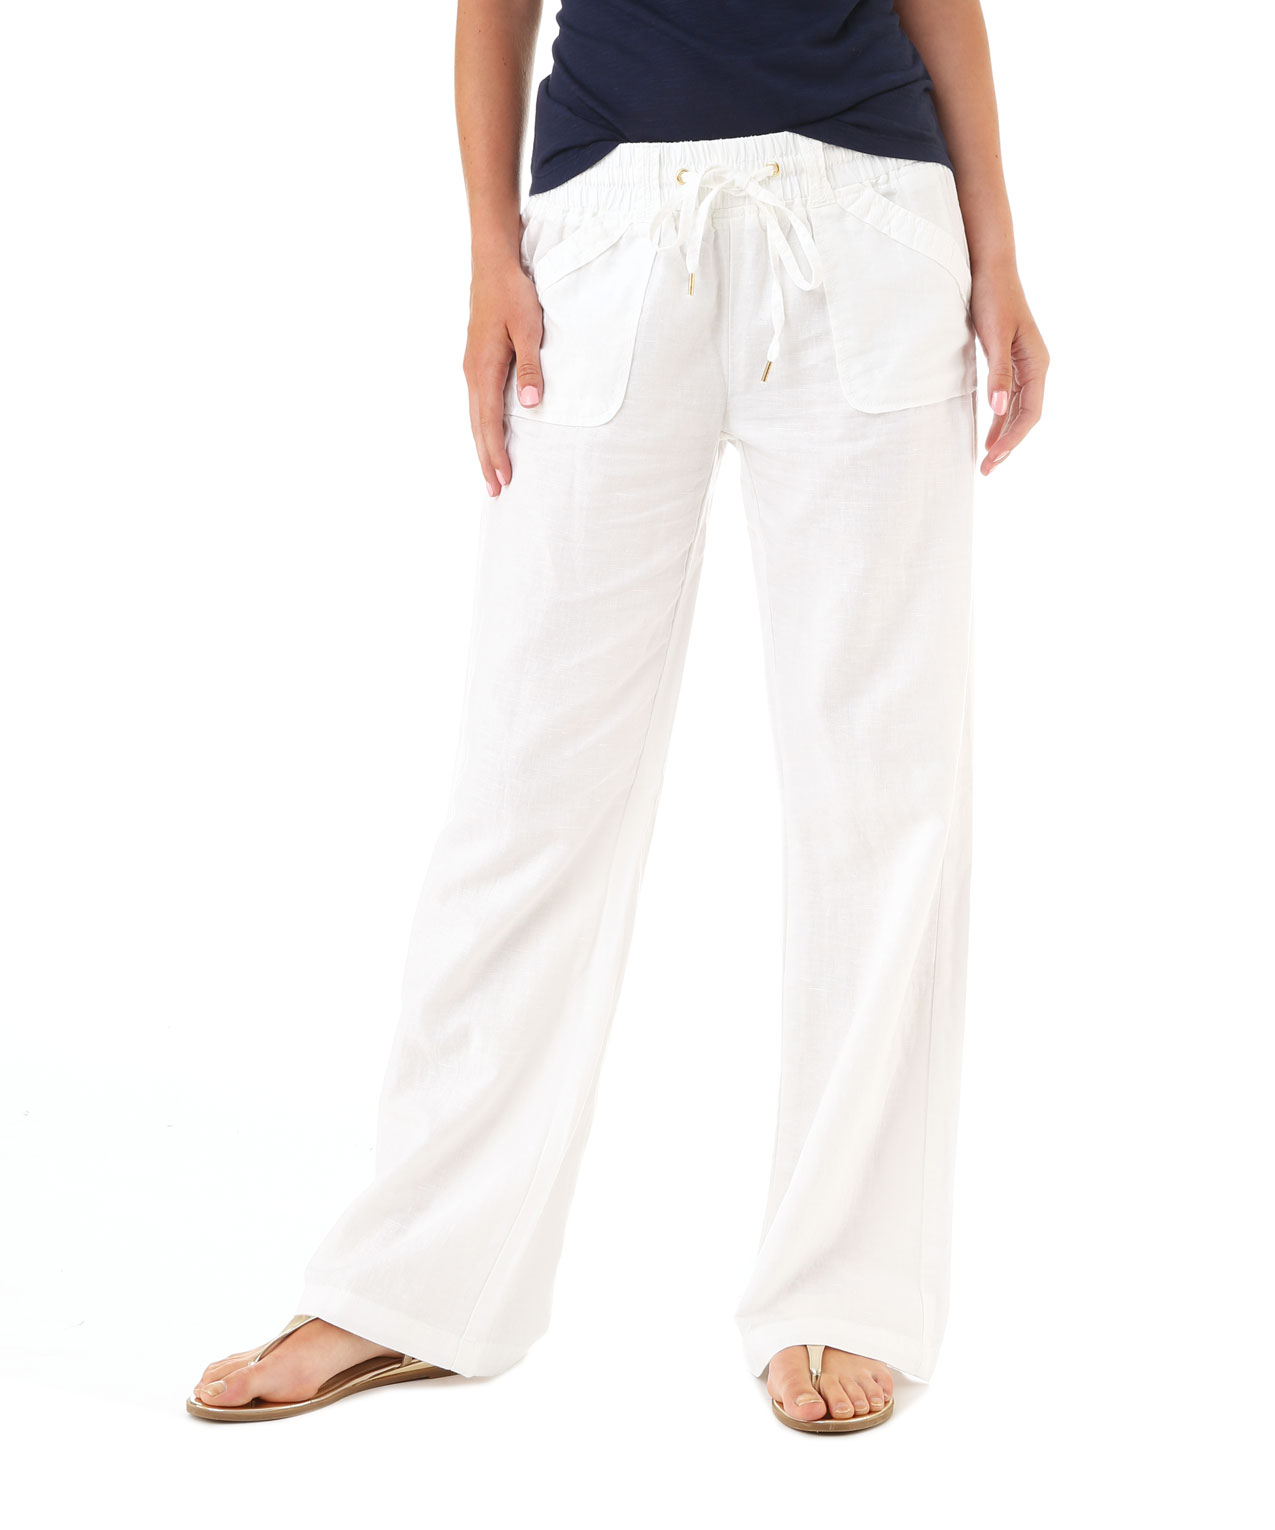 Shop for womens linen cargo pants online at Target. Free shipping on purchases over $35 and save 5% every day with your Target REDcard.